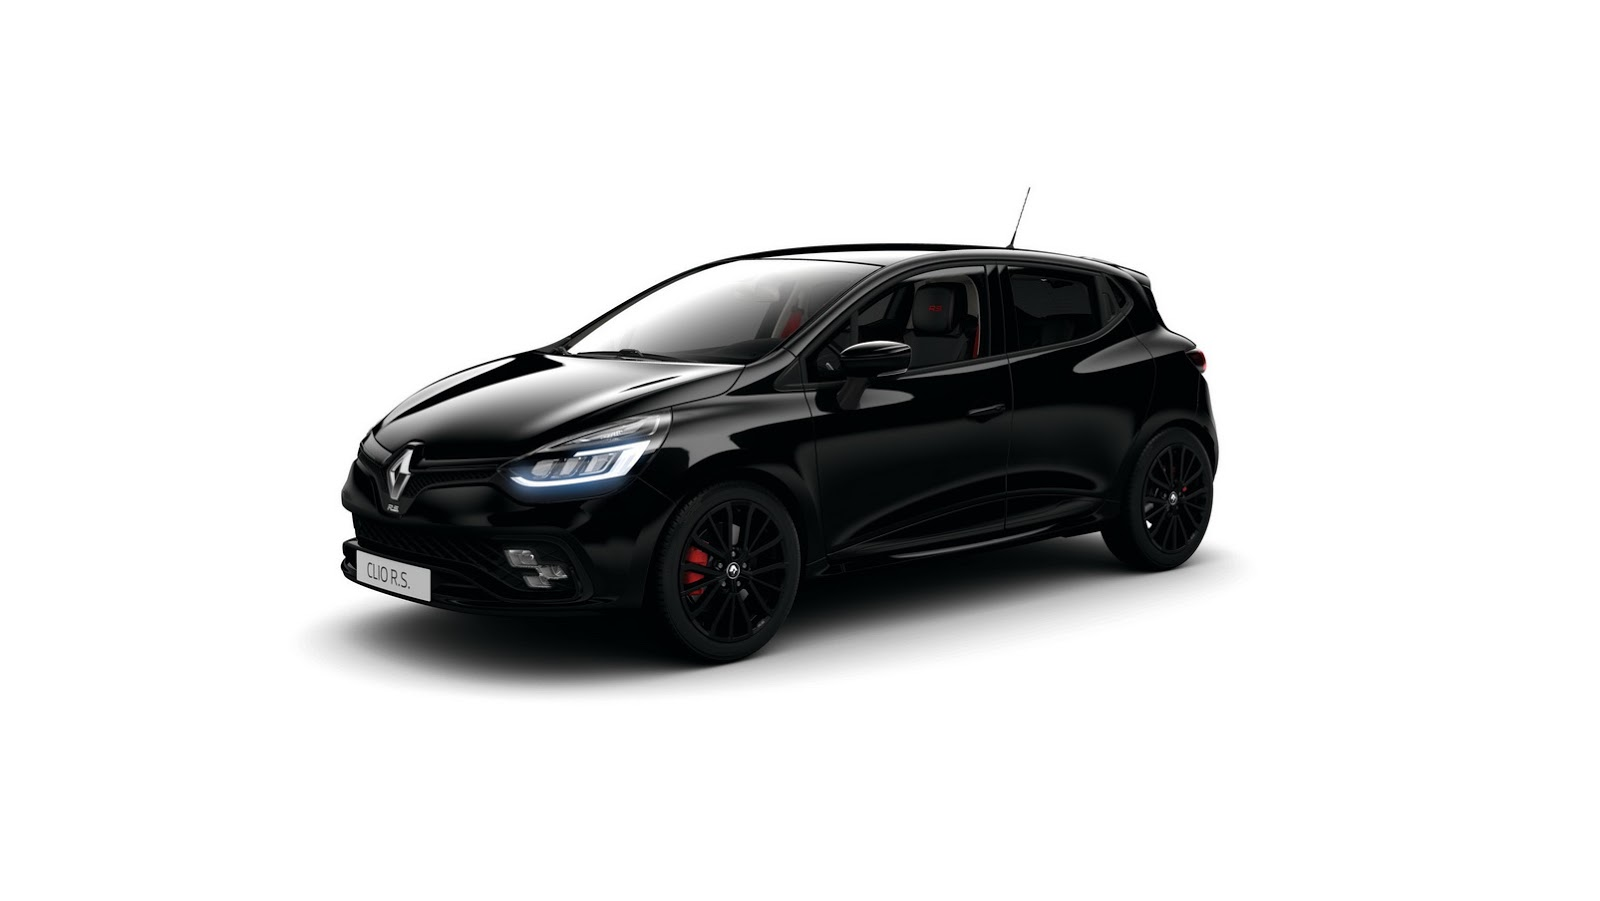 renault clio rs gets black edition pack looks like mini. Black Bedroom Furniture Sets. Home Design Ideas